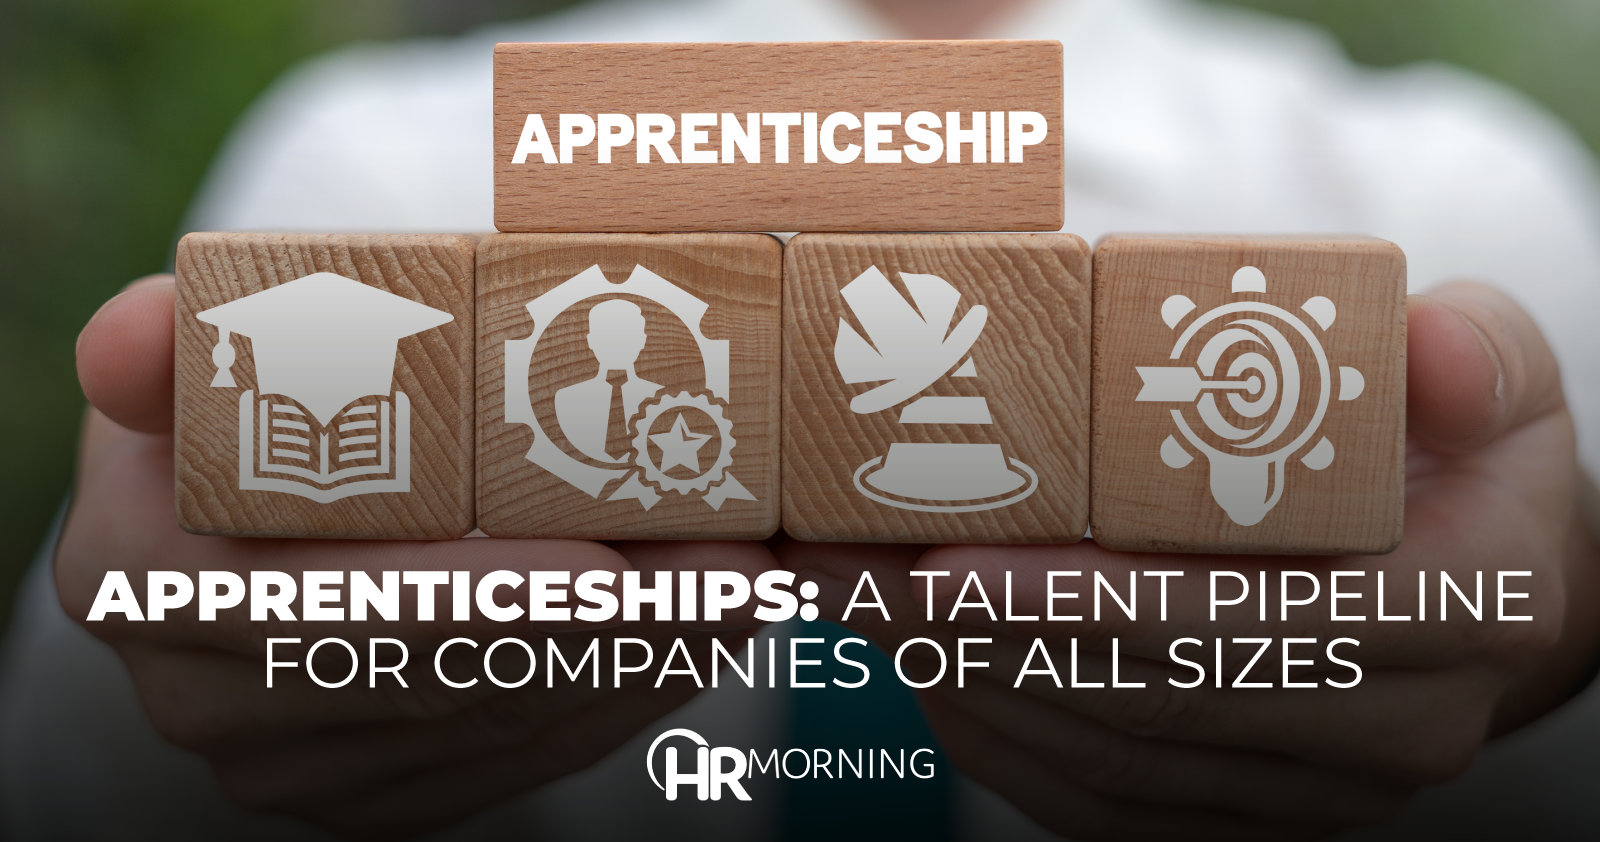 Apprenticeships A Talent Pipeline For Companies Of All Sizes